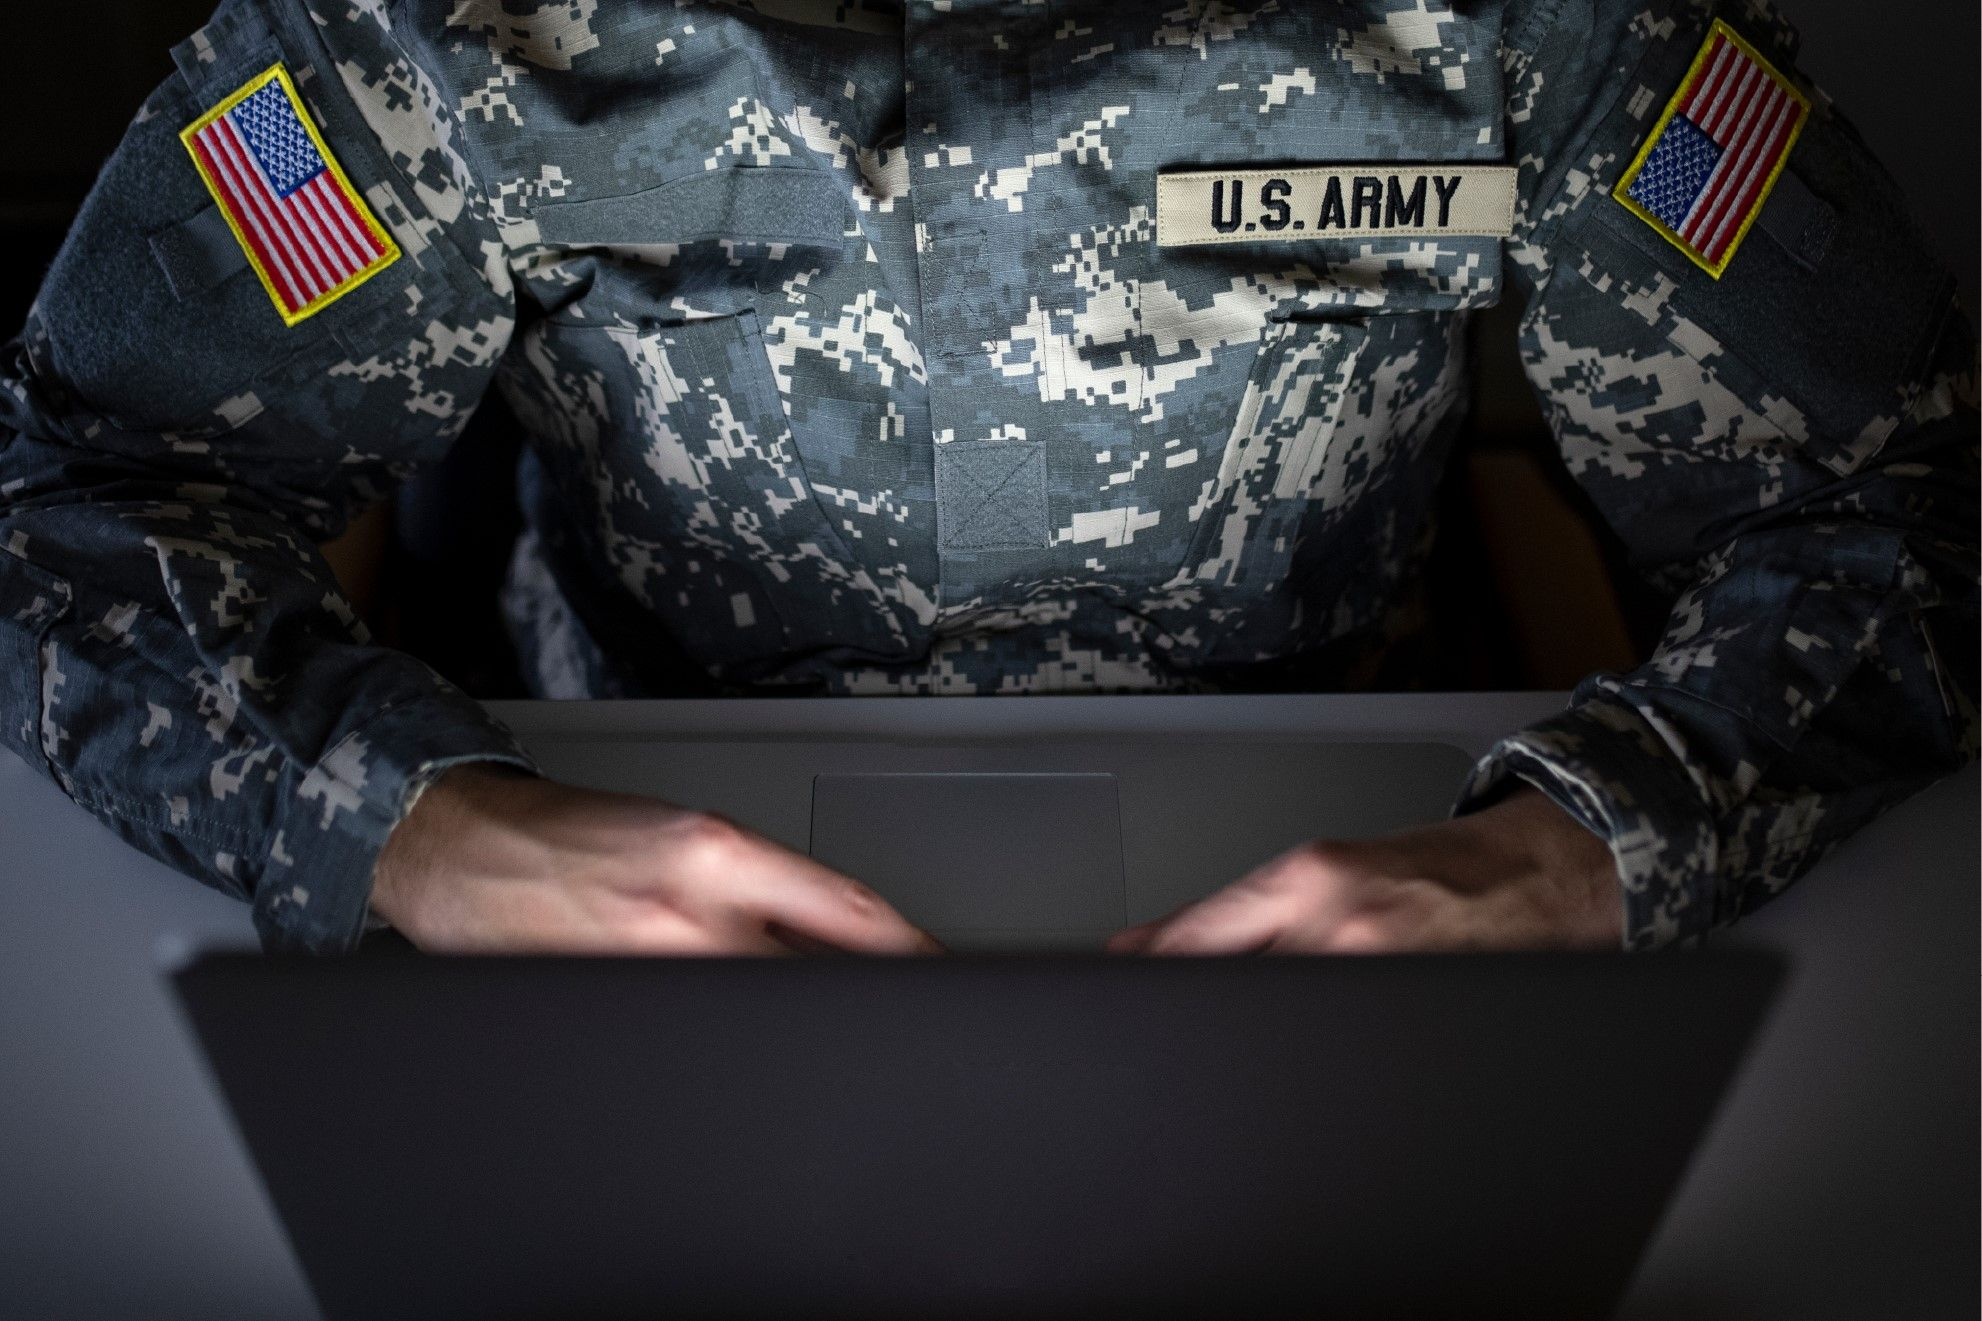 Fortress Delivers Technical Support and Operational Analysis to Army